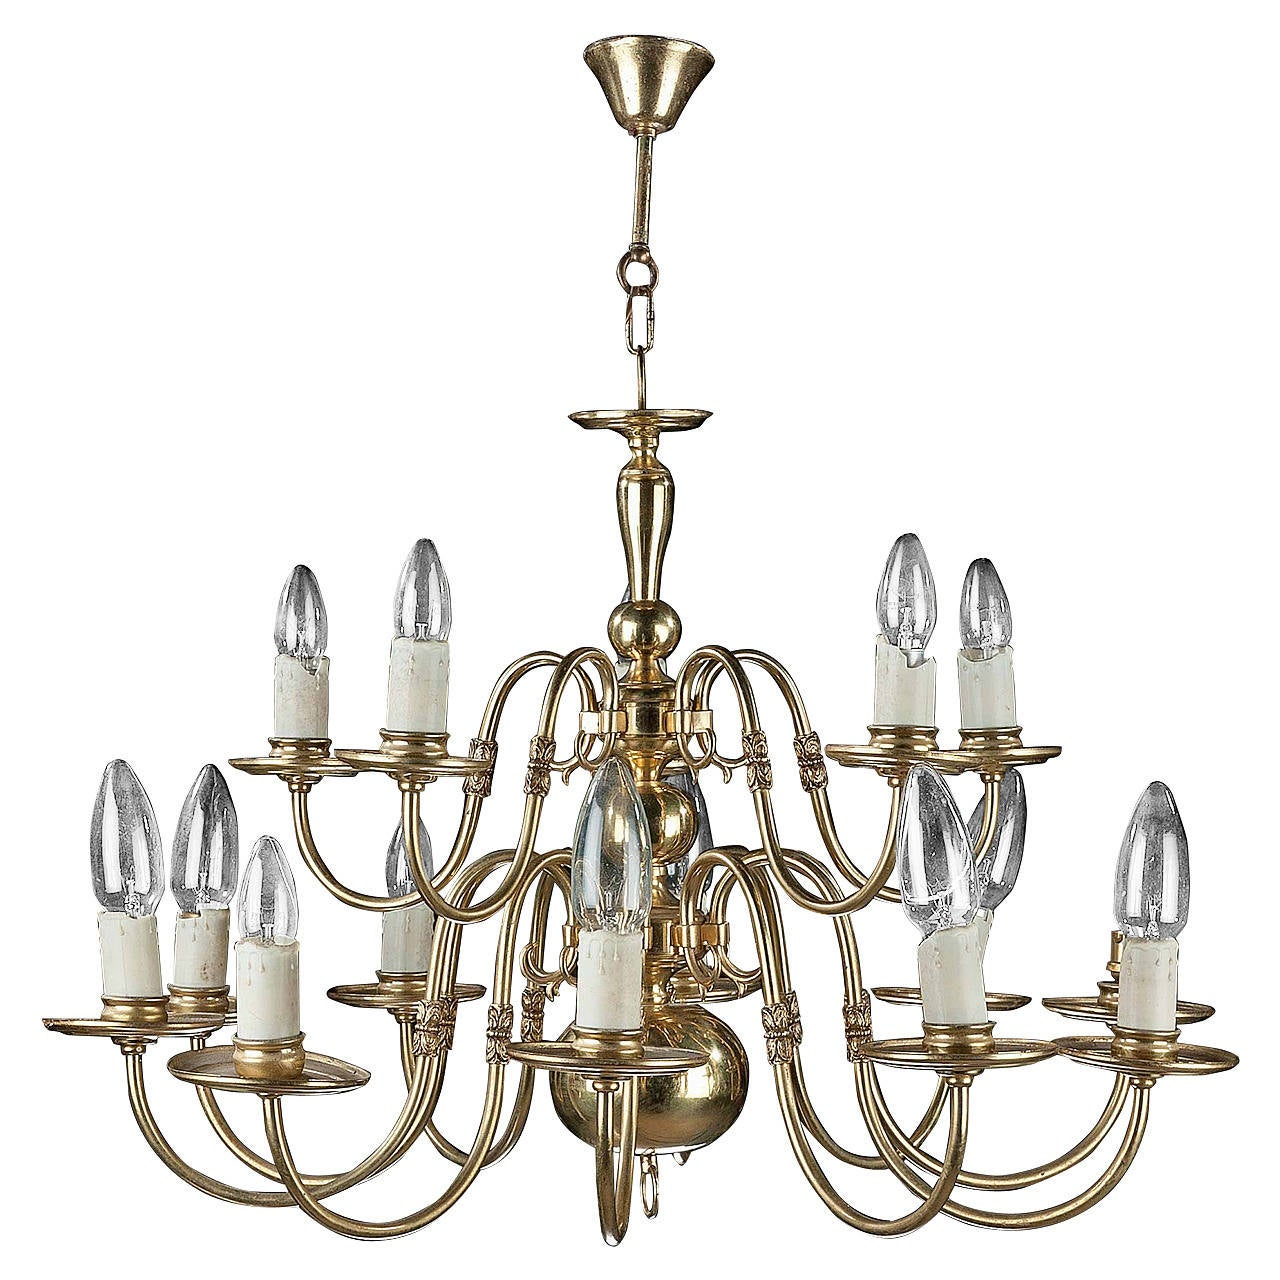 Twelve-Arm, Tiered Brass Chandelier